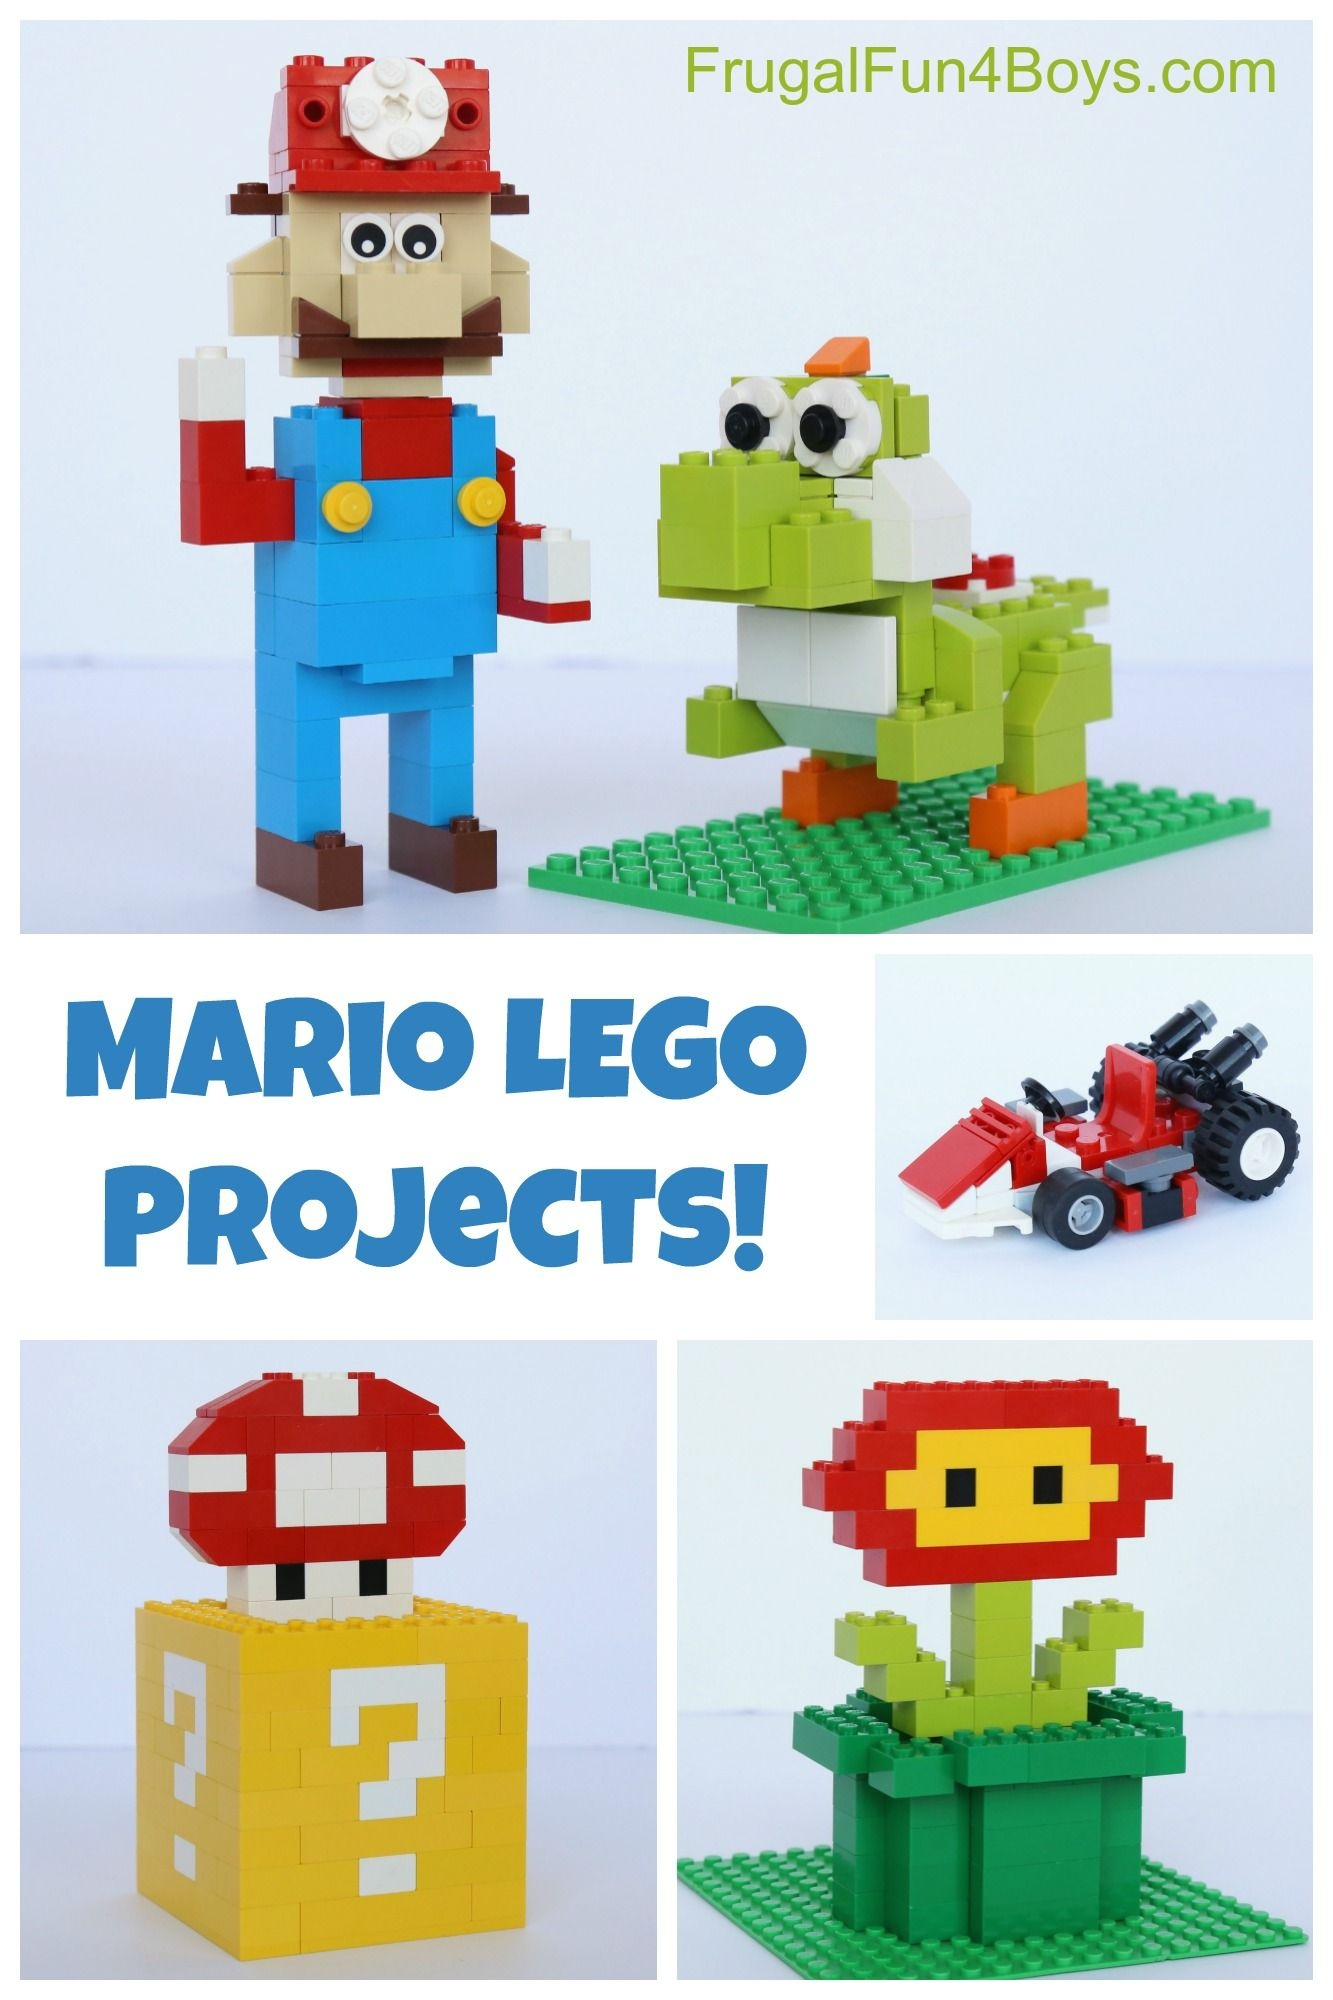 Mario Lego Projects With Building Instructions | Frugal Fun For Boys - Free Printable Lego Instructions